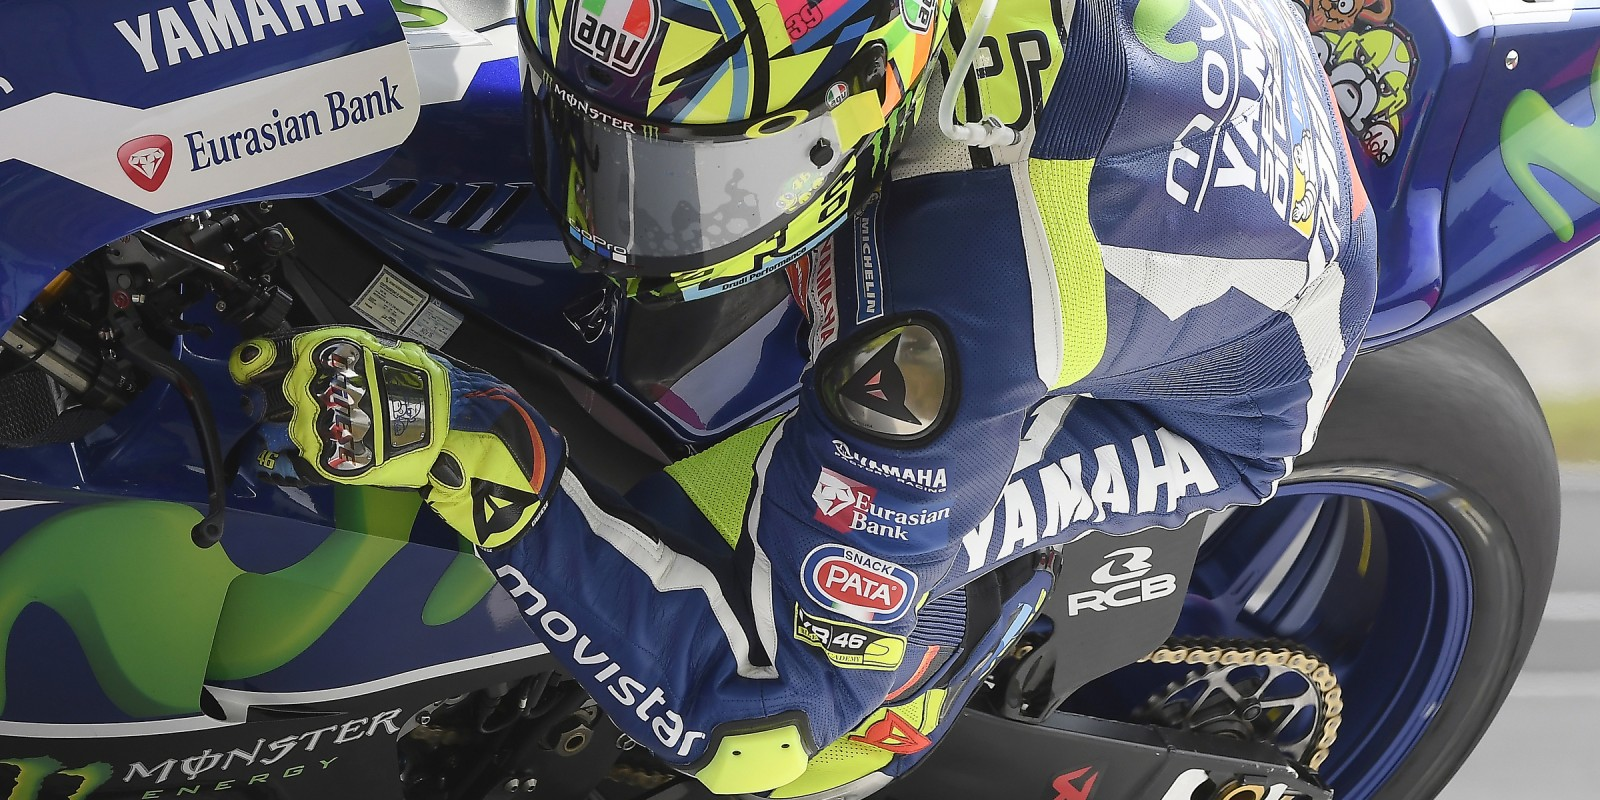 Valentino Rossi at the 2016 Shell Malaysia Motorcycle Grand Prix